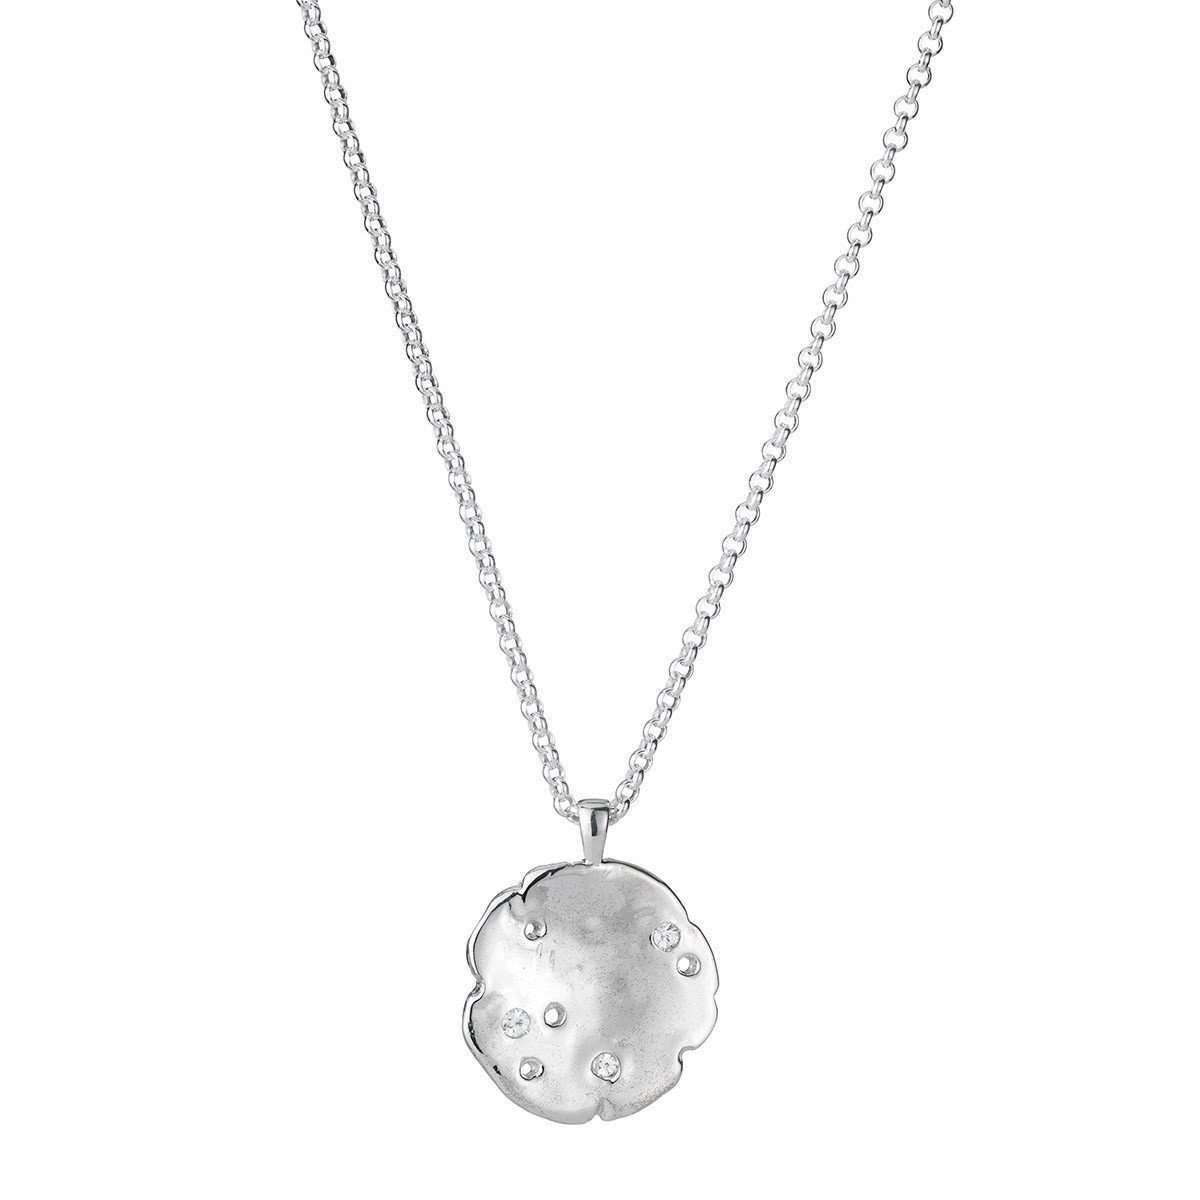 Deborah Blyth Jewellery Cosmos Necklace Silver